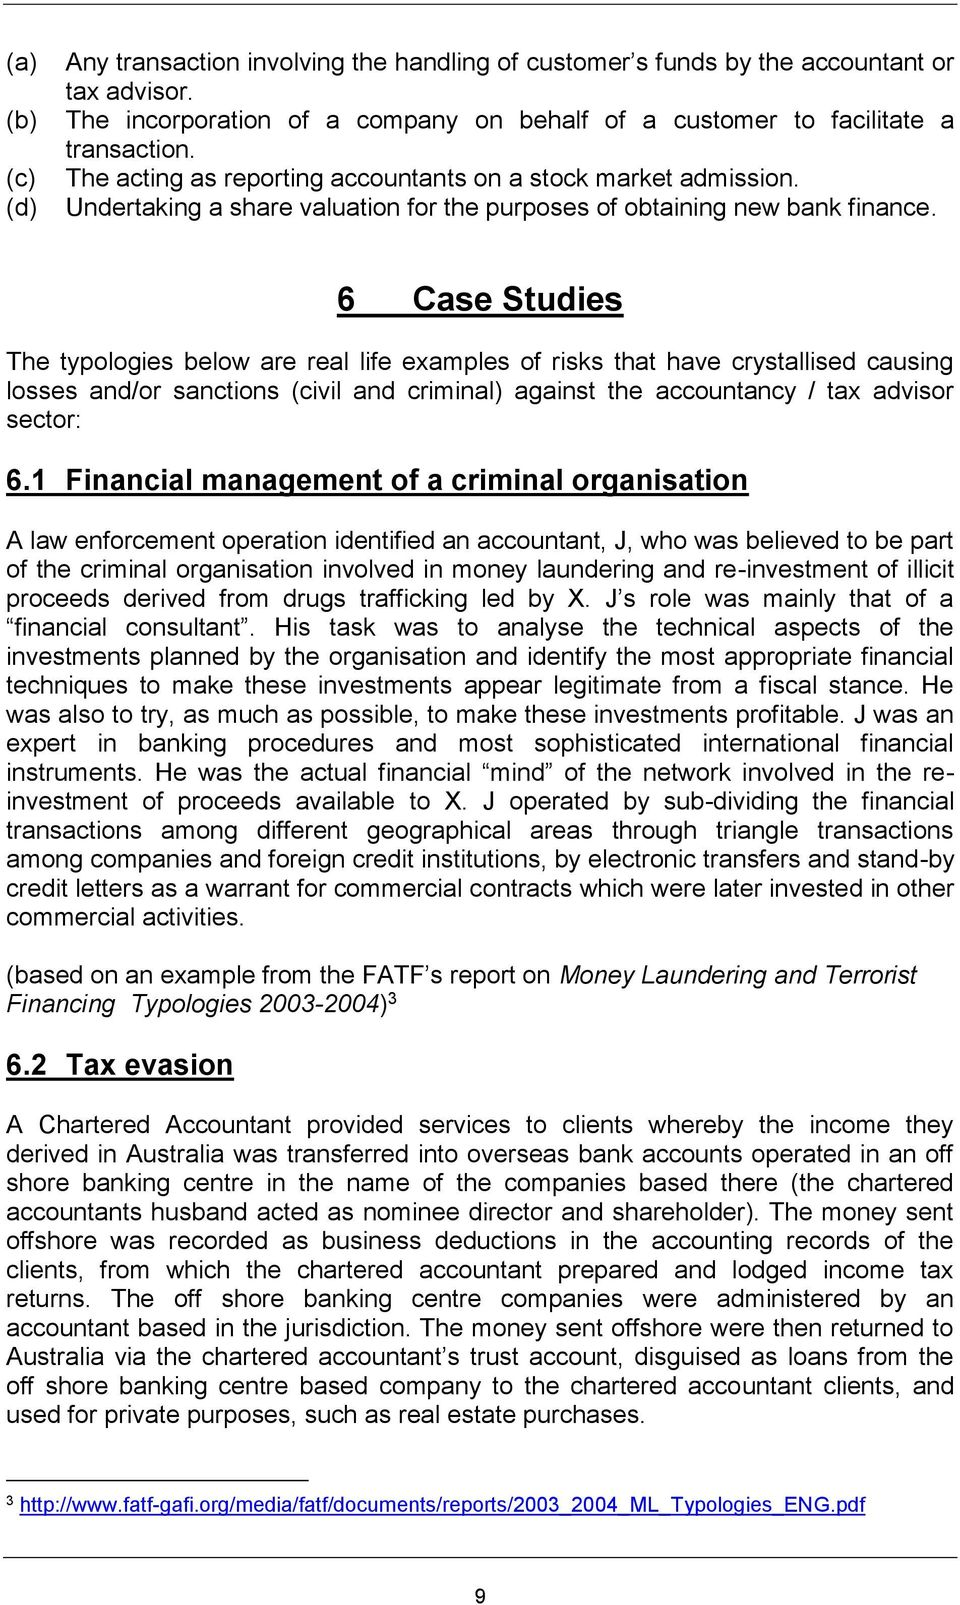 6 Case Studies The typologies below are real life examples of risks that have crystallised causing losses and/or sanctions (civil and criminal) against the accountancy / tax advisor sector: 6.